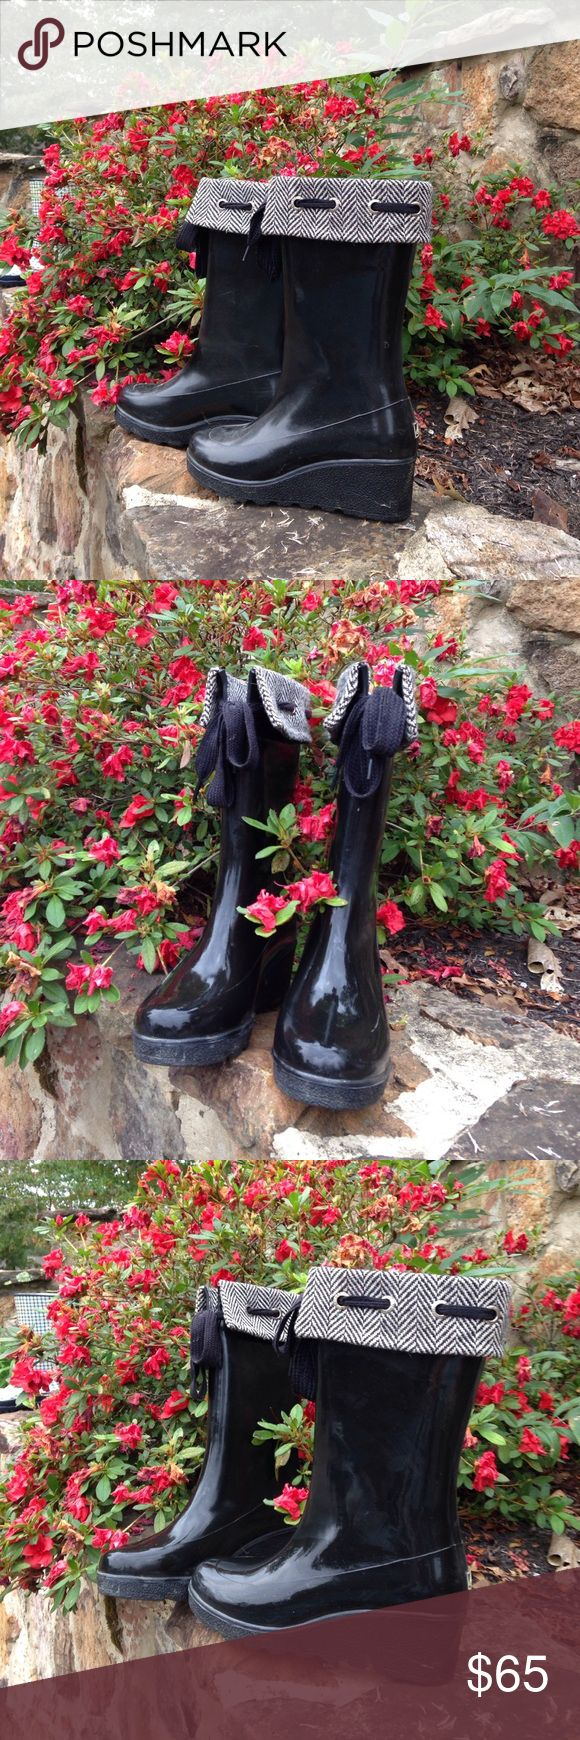 Black Sperry Rain Boots Sperry Rainboots Listing: Sperry6062 Sperry Top-Sider Shoes Winter & Rain Boots